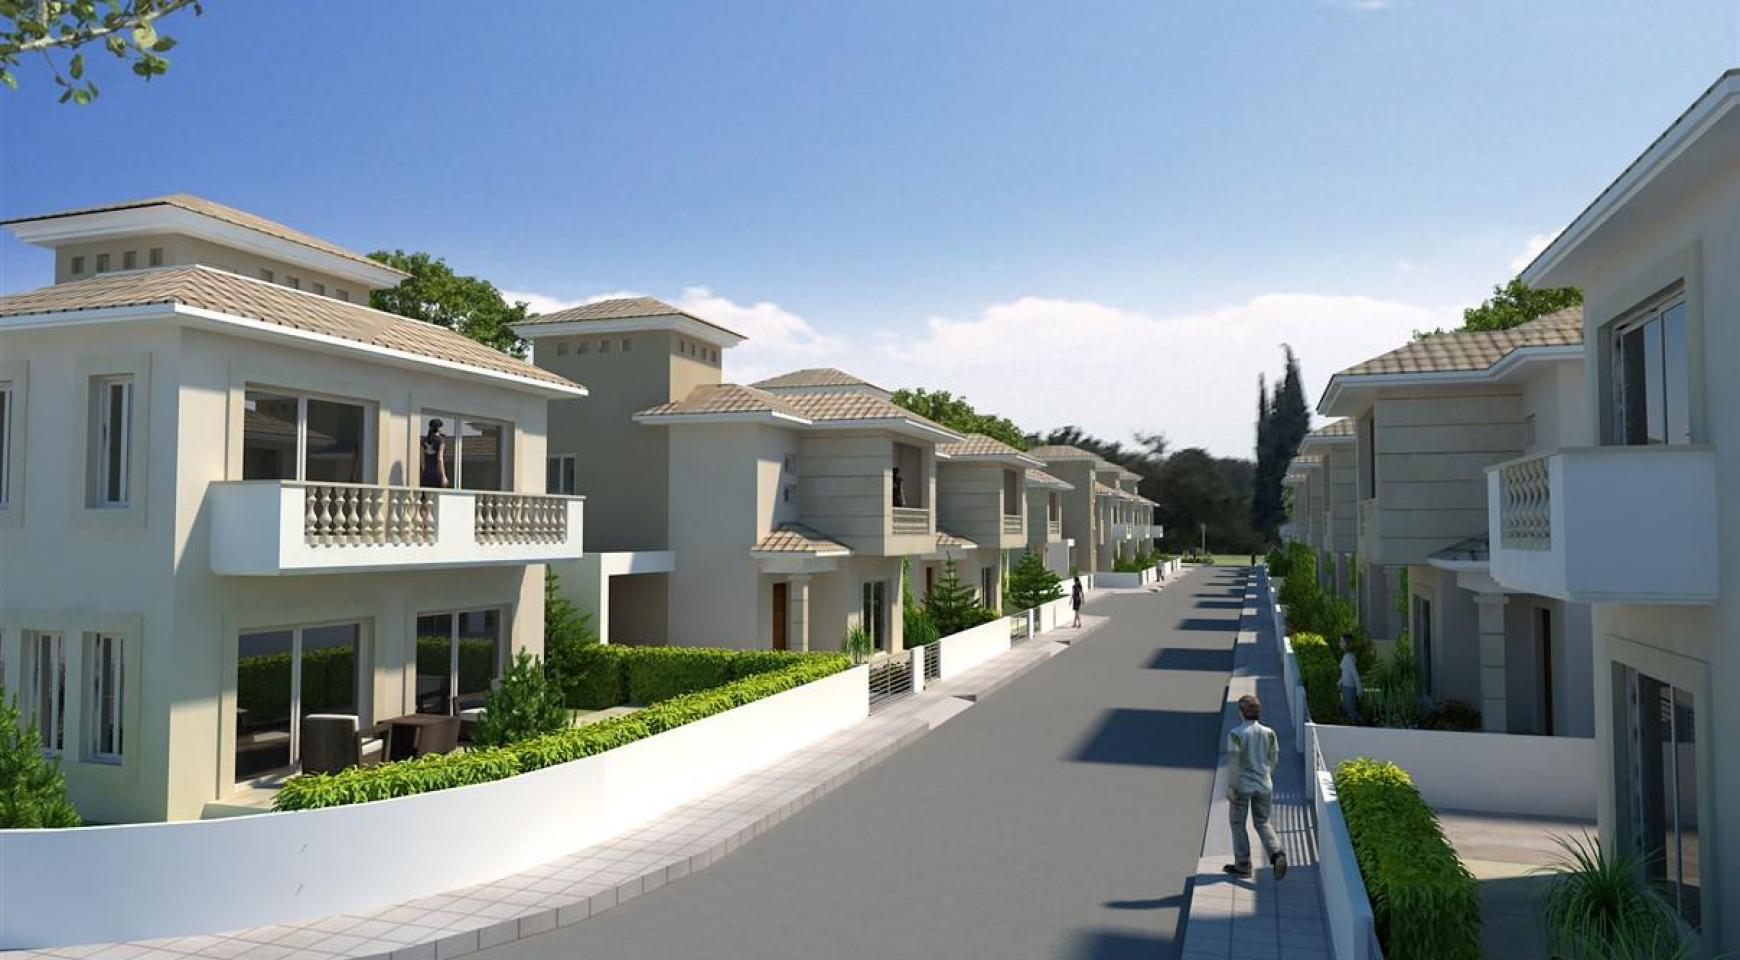 3 Bedroom Villa within a New Project - 20